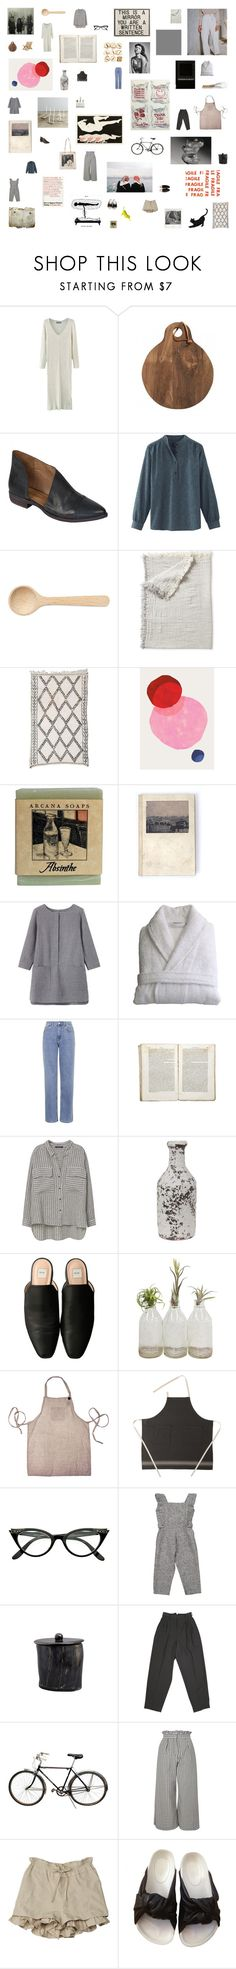 """""""whenever i send a DM on twitter my heart races like a hummingbird"""" by monastic ❤ liked on Polyvore featuring Muubs, Free People, HAY, Serena & Lily, Tracie Andrews, Toast, Linum Home Textiles, Topshop, Jayson Home and Violeta by Mango"""